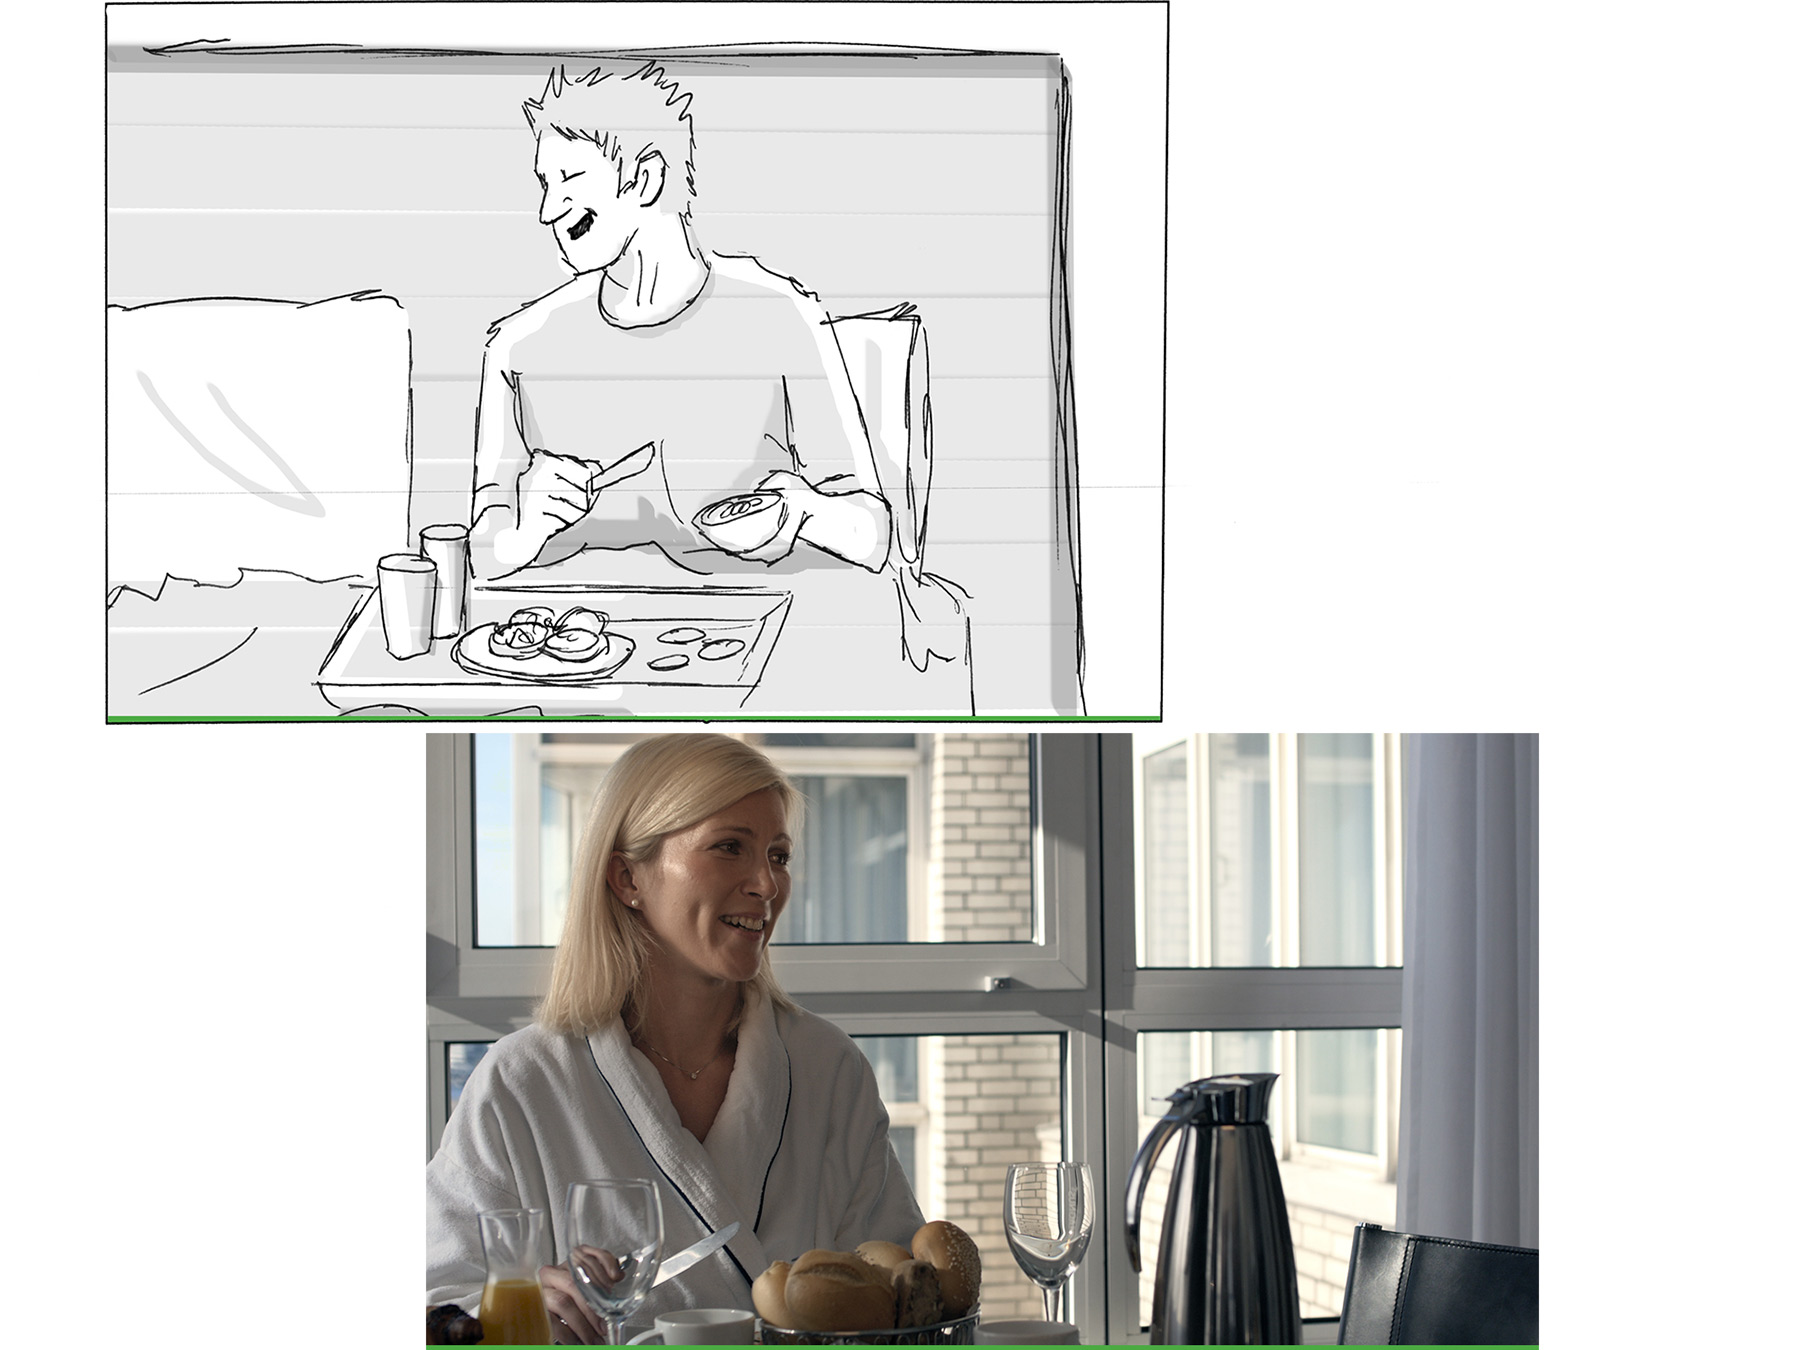 AuD Referenzen Holiday Inn Imagefilm Storyboard